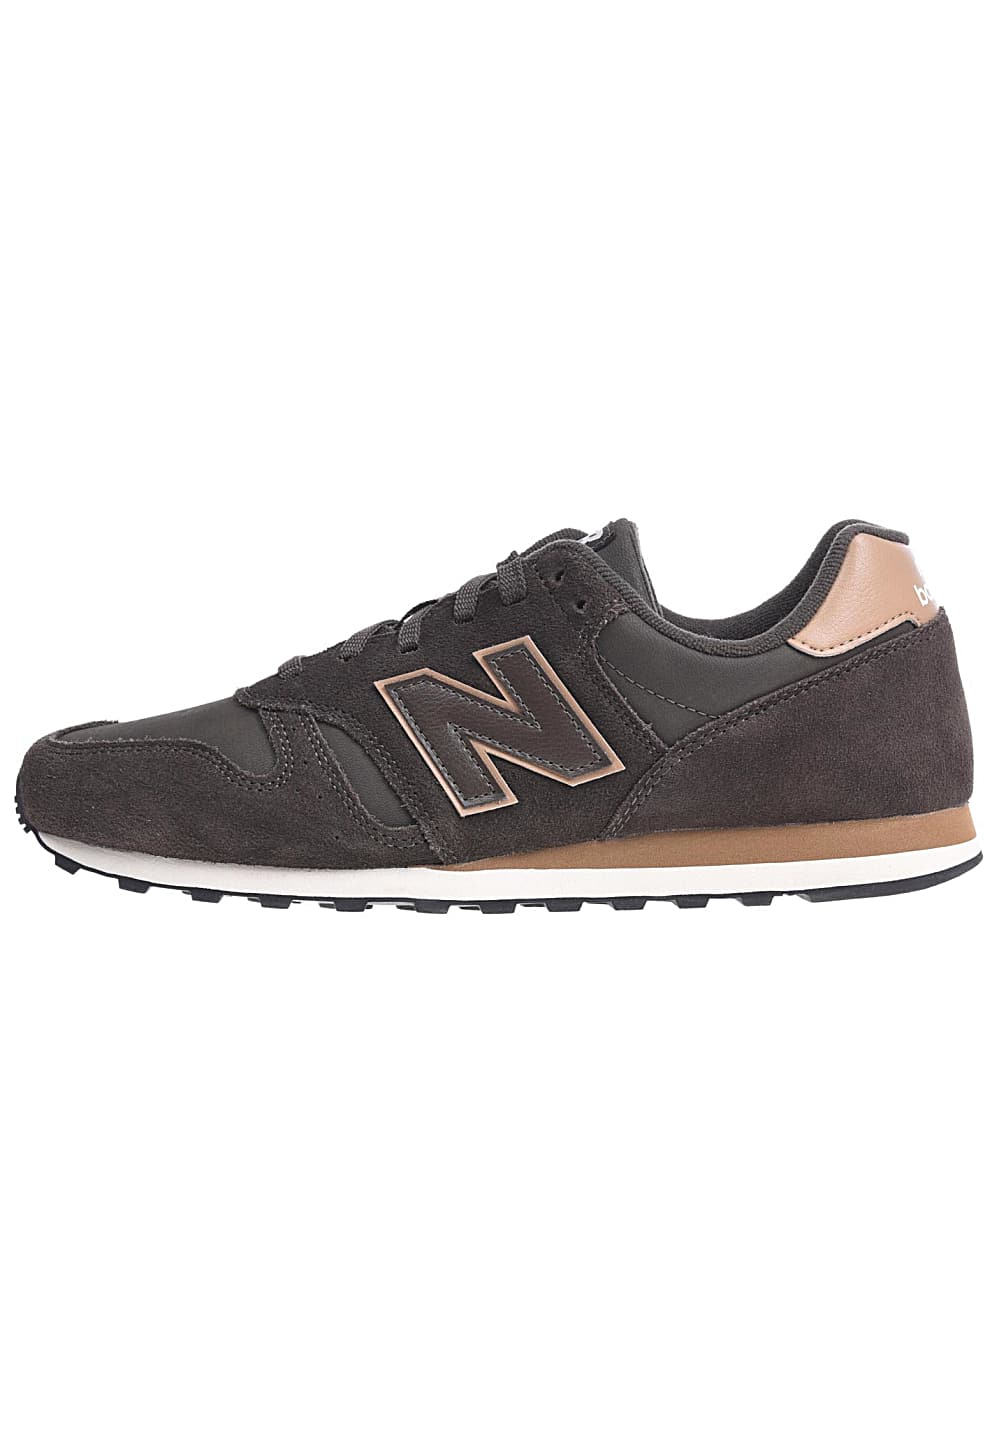 NEW BALANCE ML373 D Baskets pour Homme Marron